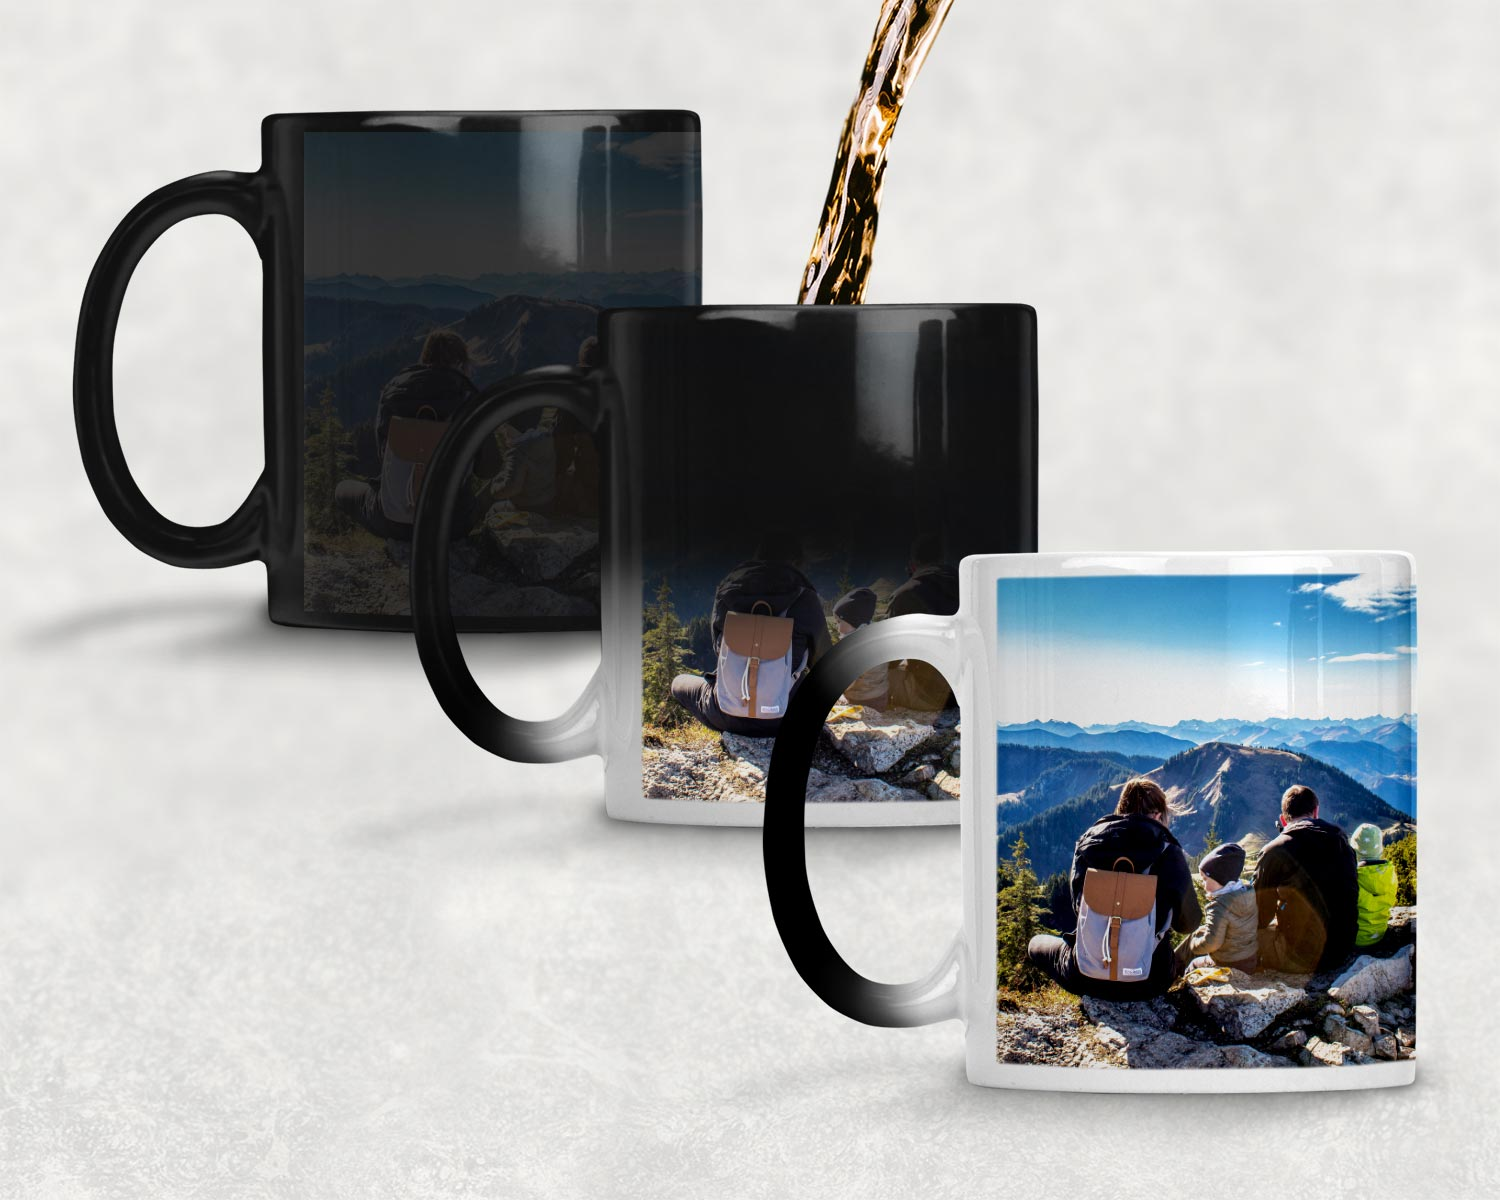 Magic mug transition